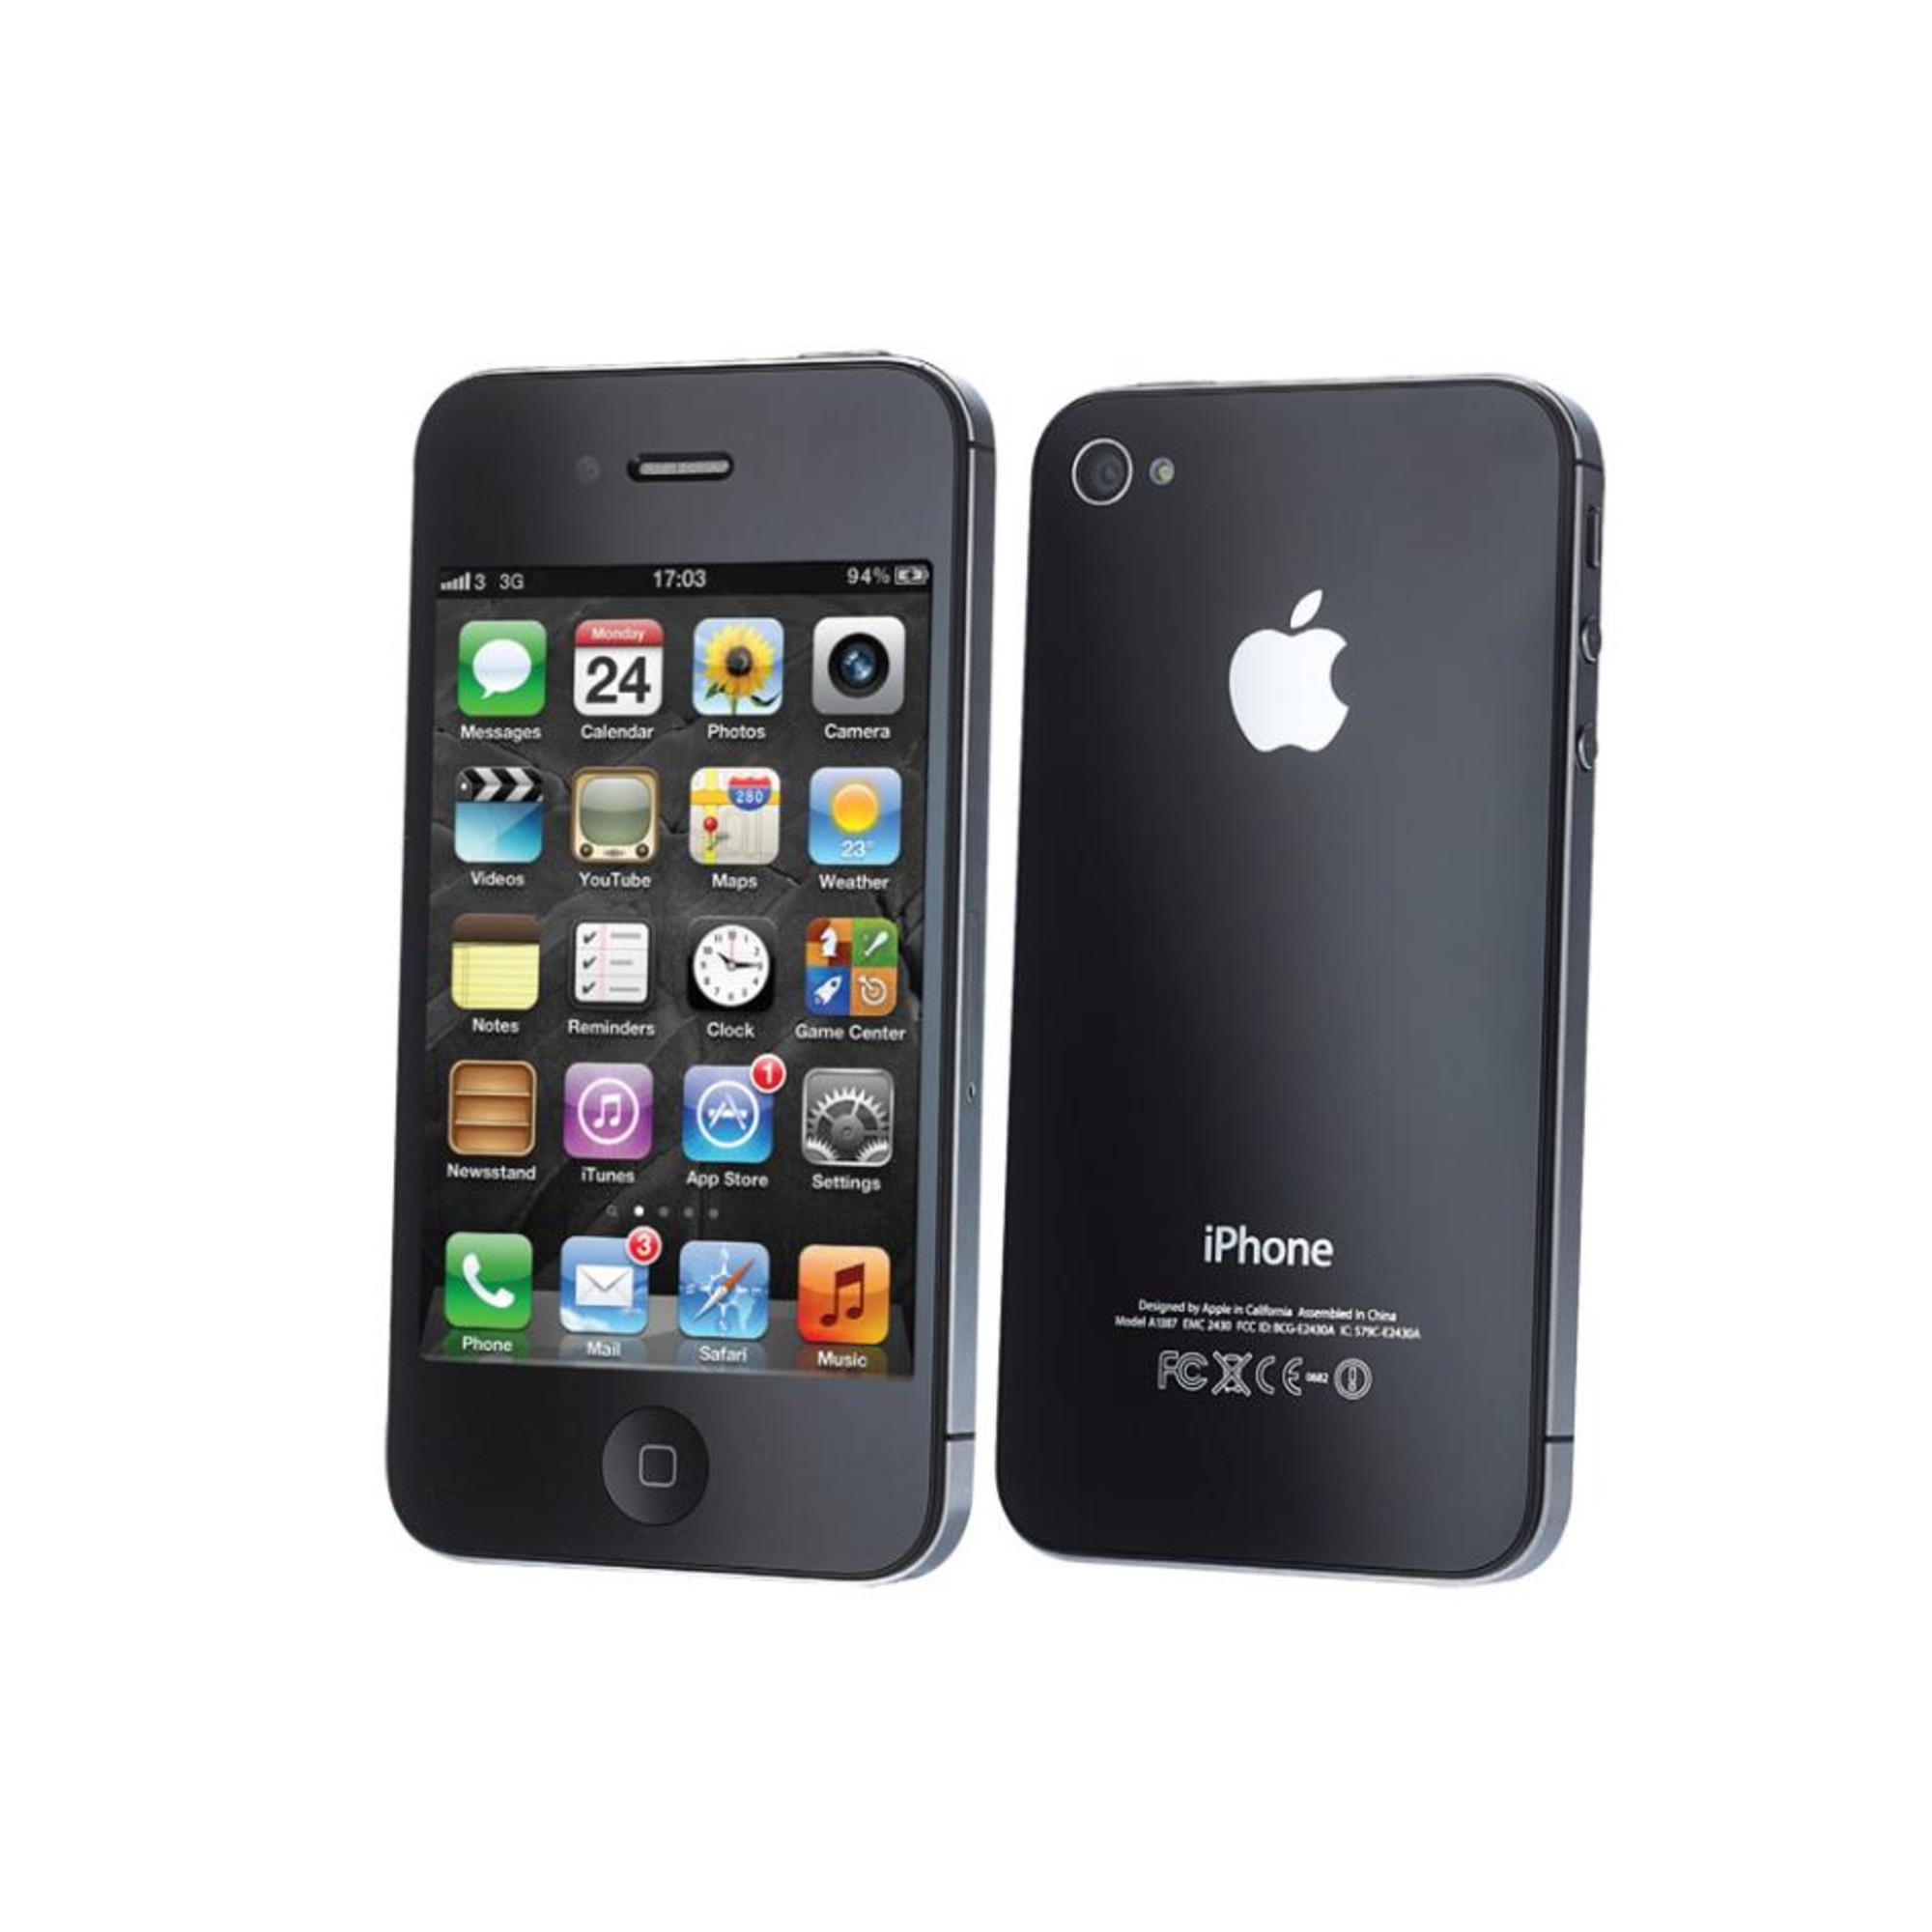 Iphone 4 8gb Libre Apple Iphone 4 8gb Factory Unlocked Gsm Ios Smartphone Ebay